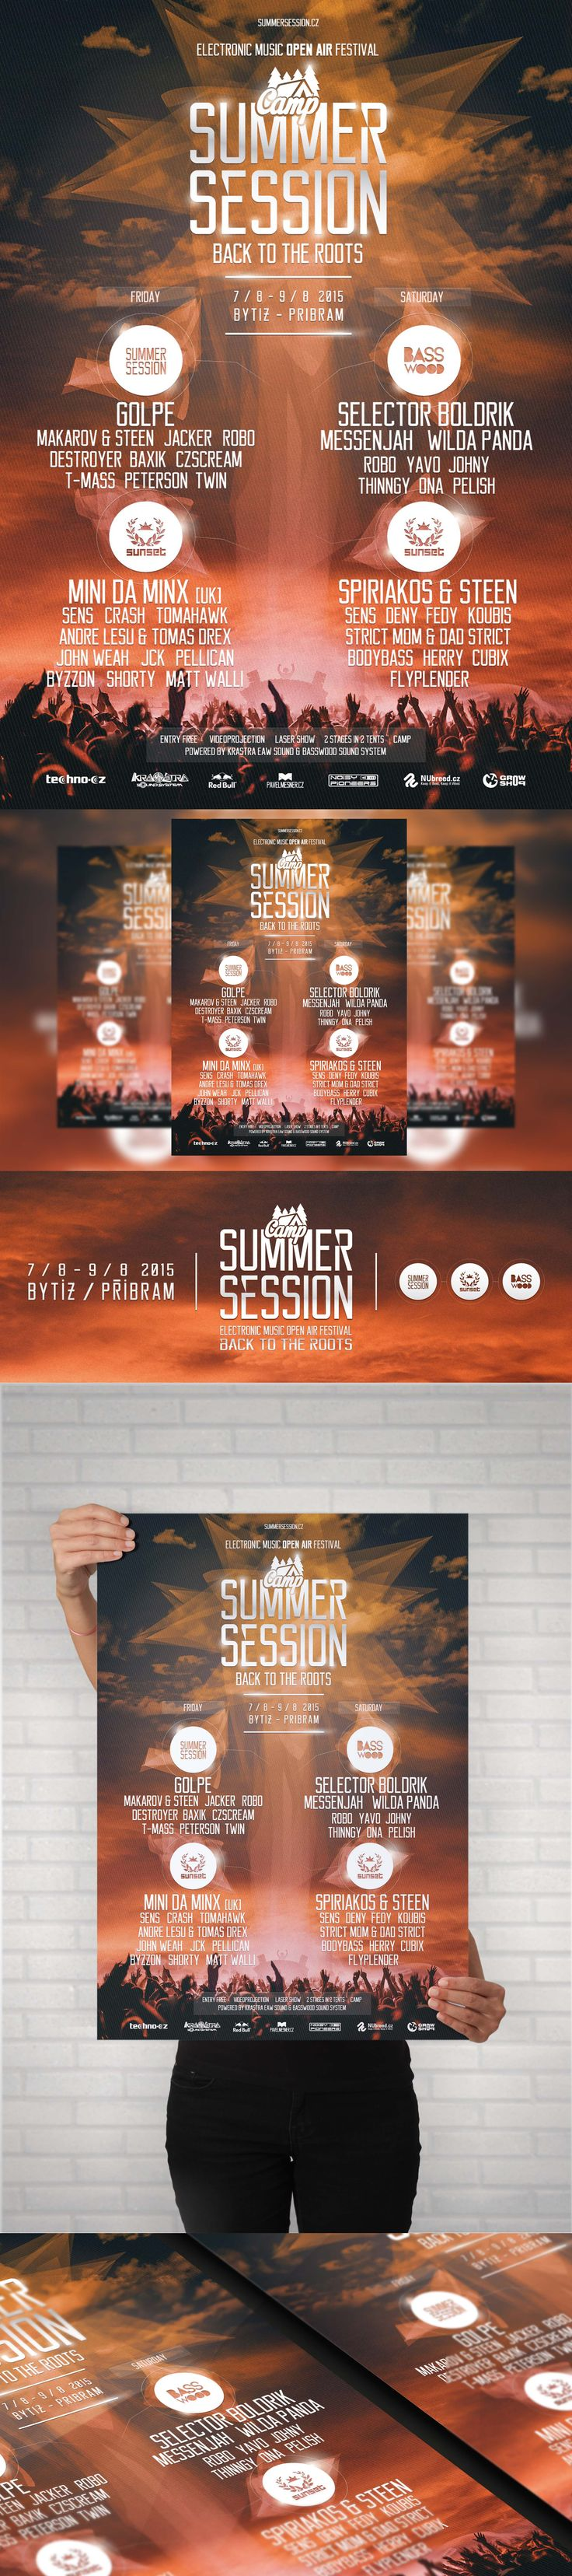 Summer session camp 2015 Electronic music event - A3, A4, A5 Poster, Facebook event header and preview. My first work for this crew. #poster #posterdesign #fbheader #graphicdesign